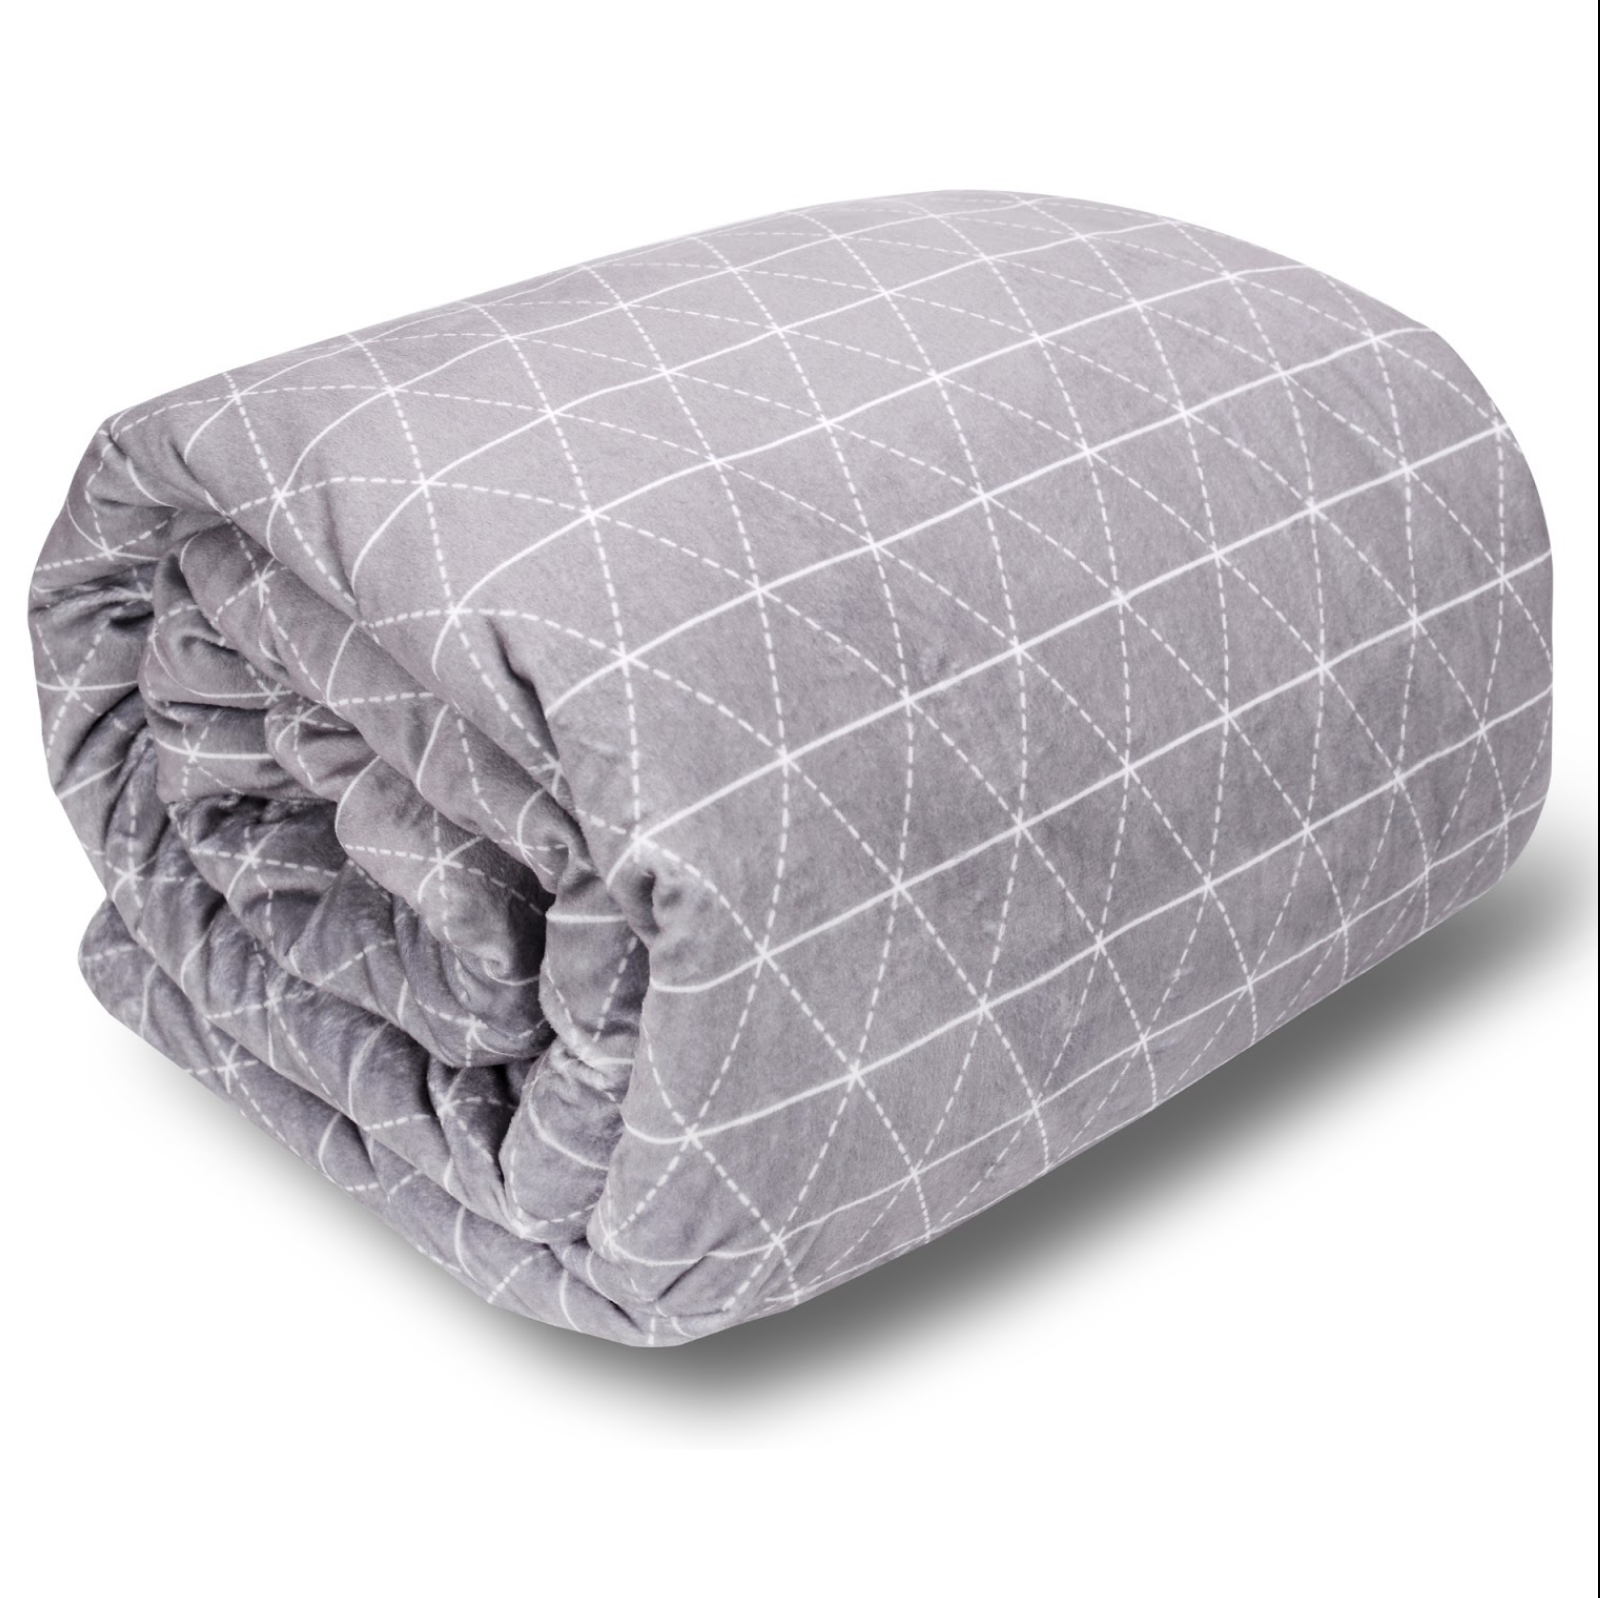 Luxury Weighted Blanket for Adults & Removable Cover Set For